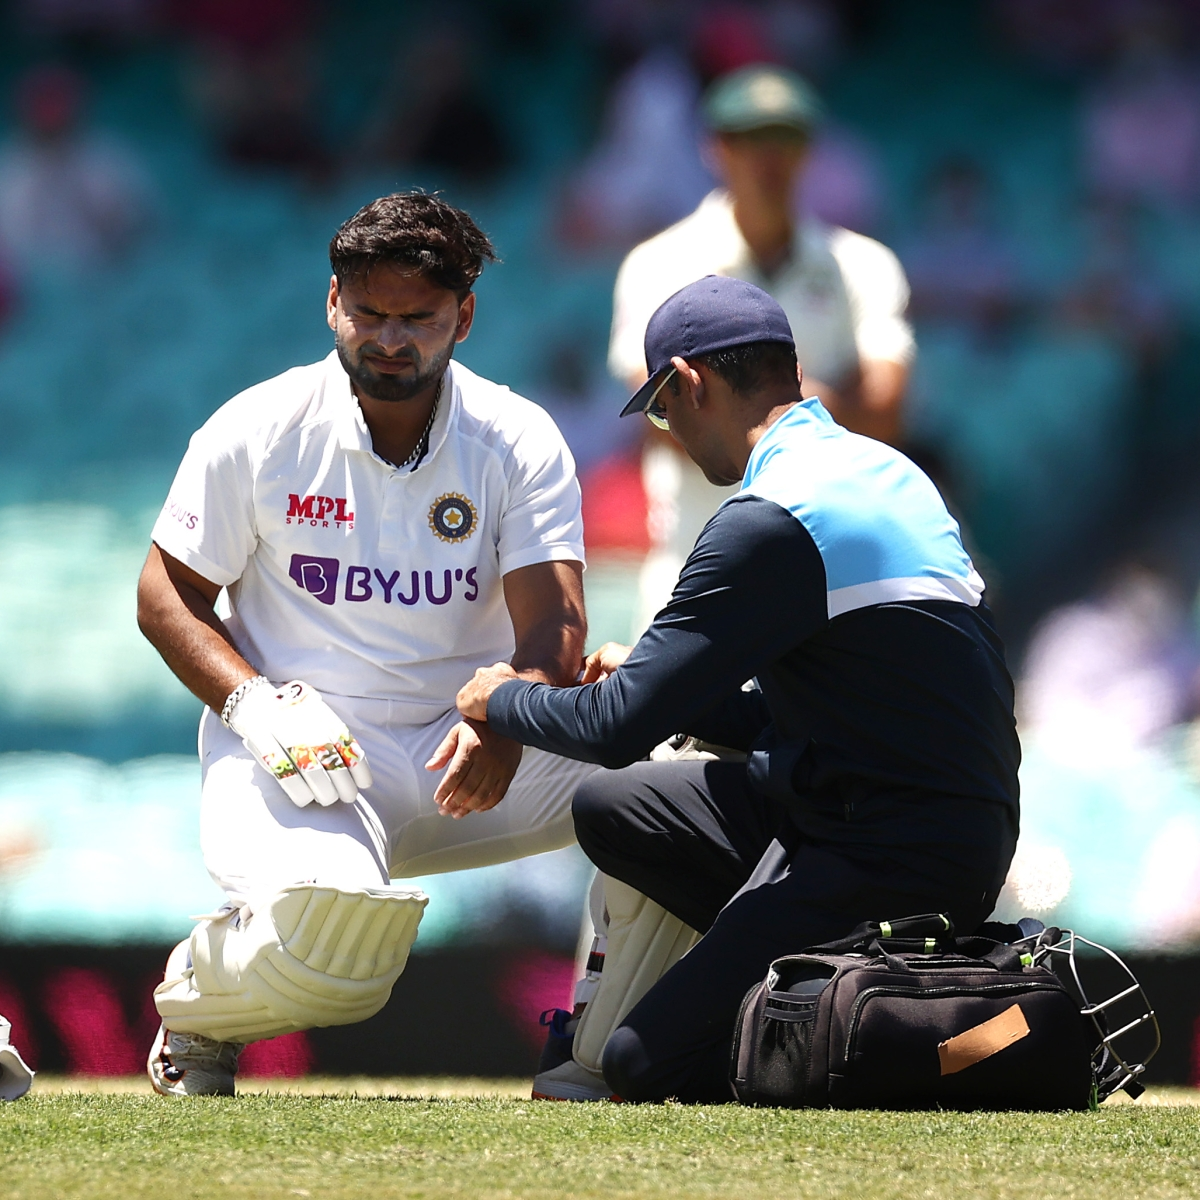 Ind vs Aus, 3rd Test: Wriddhiman Saha to keep wickets as Rishabh Pant goes for scan after blow on elbow